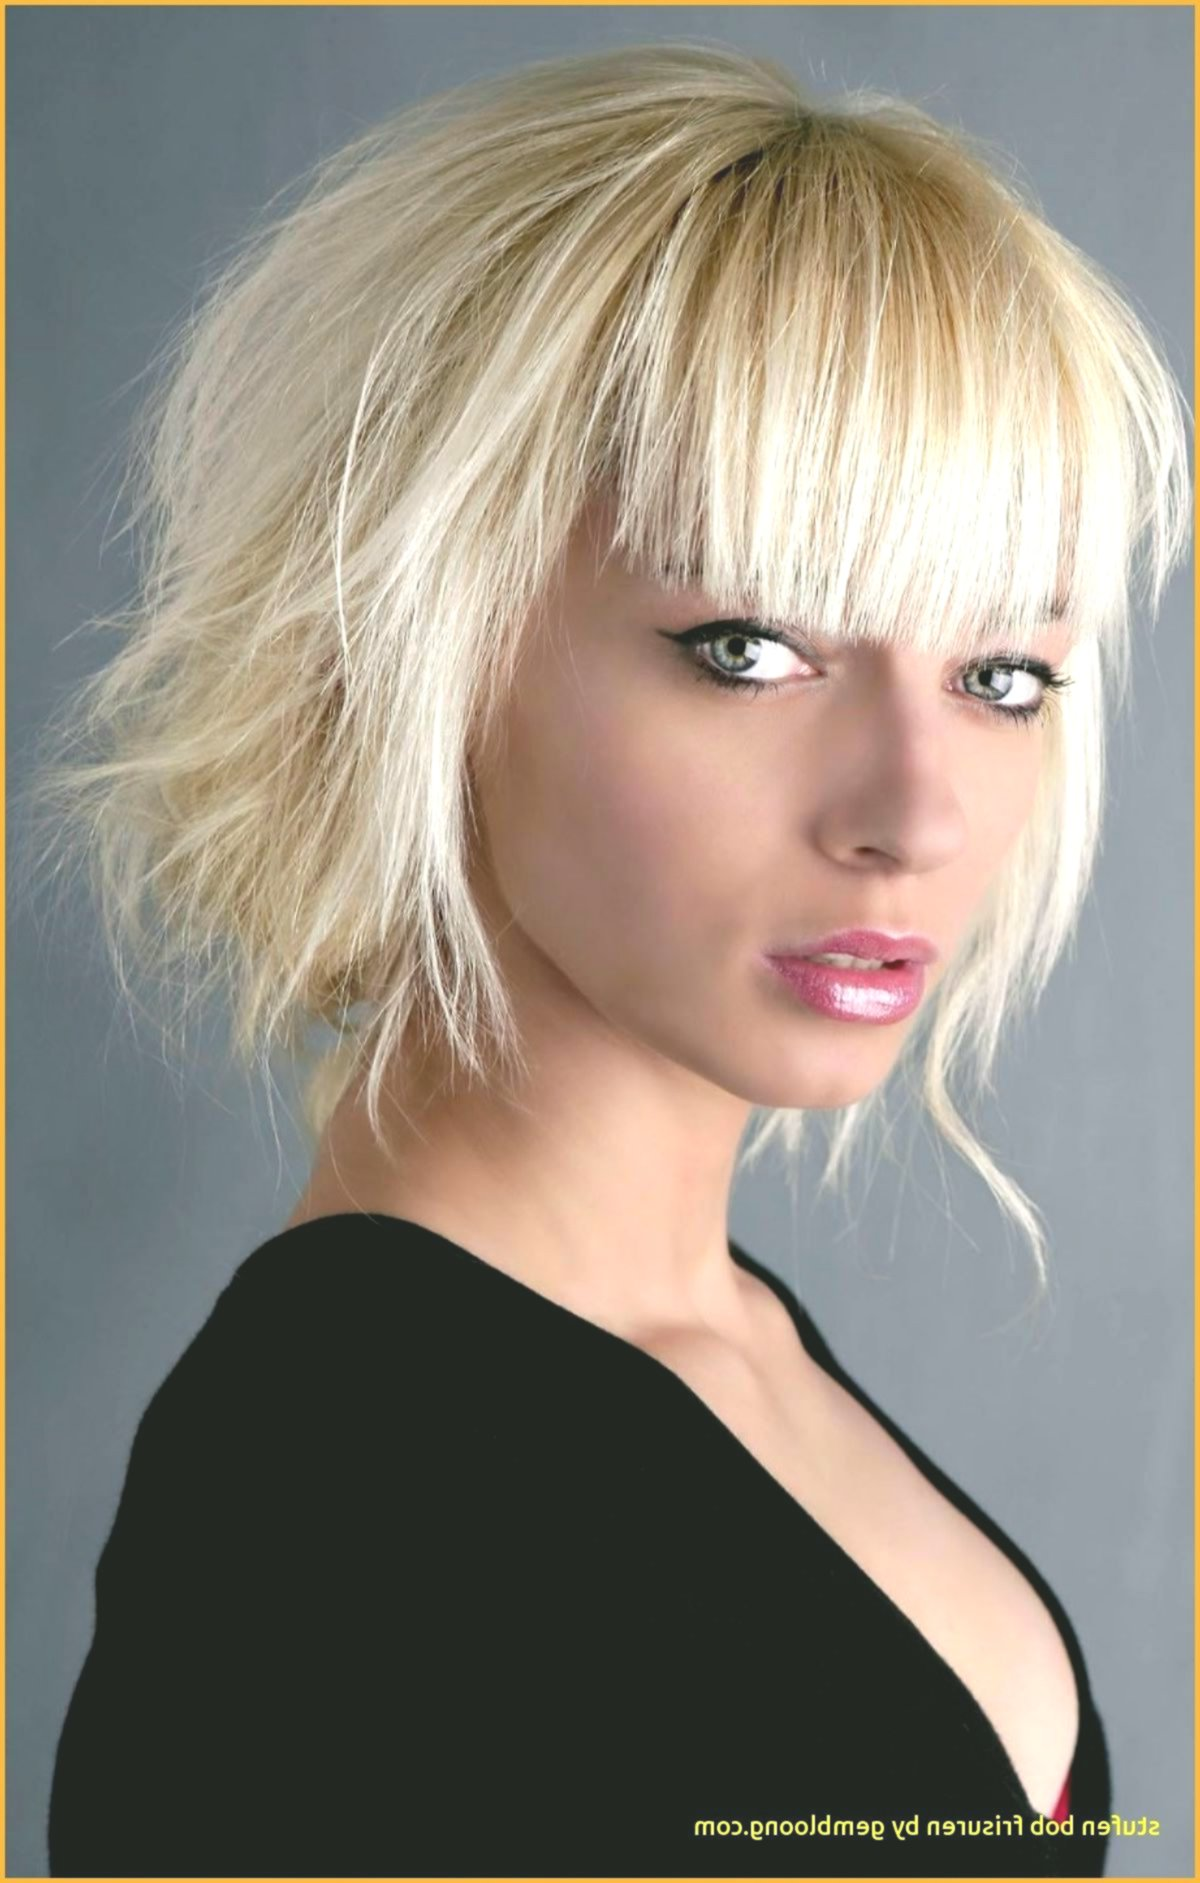 fancy hairstyles for slender faces design-Wonderful Hairstyles For Narrow Faces Decoration